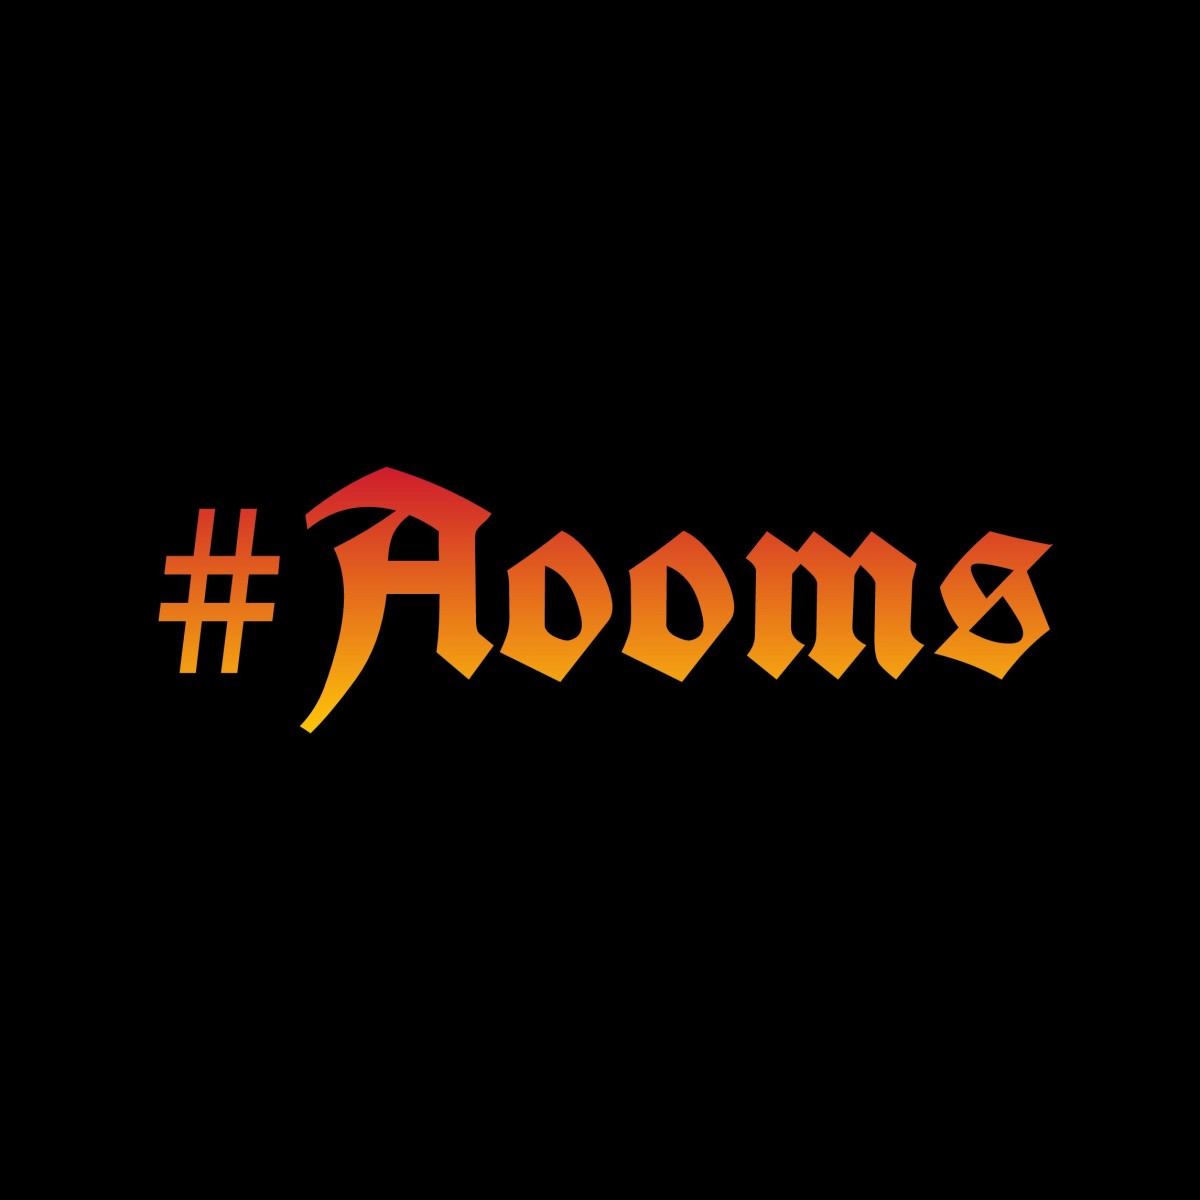 #Aooms: Nigerian sex stories, African tales and other non-erotic short stories written by Aooms #unigoss